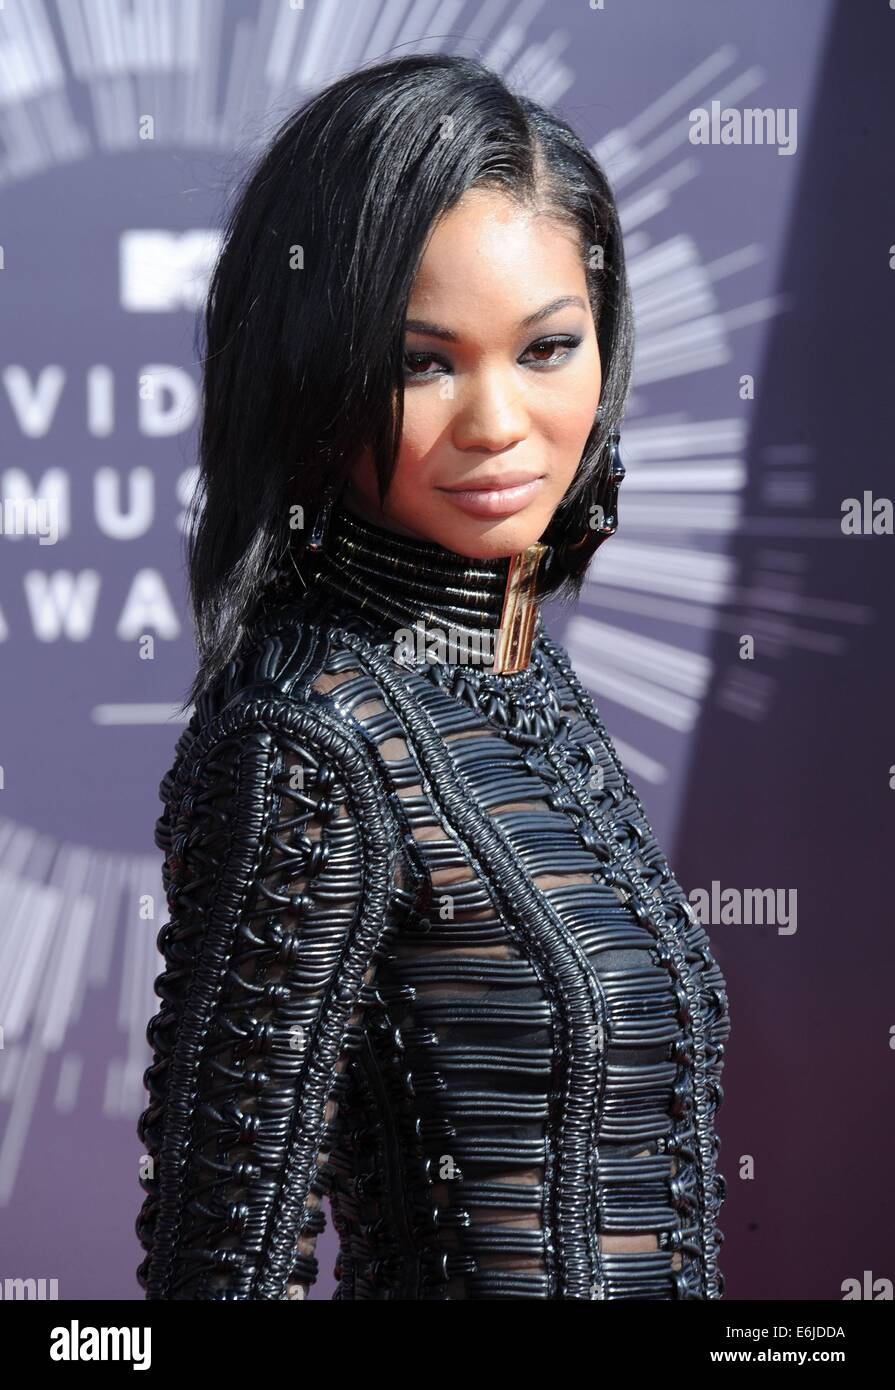 Video Chanel Iman nudes (72 photos), Ass, Cleavage, Selfie, swimsuit 2019